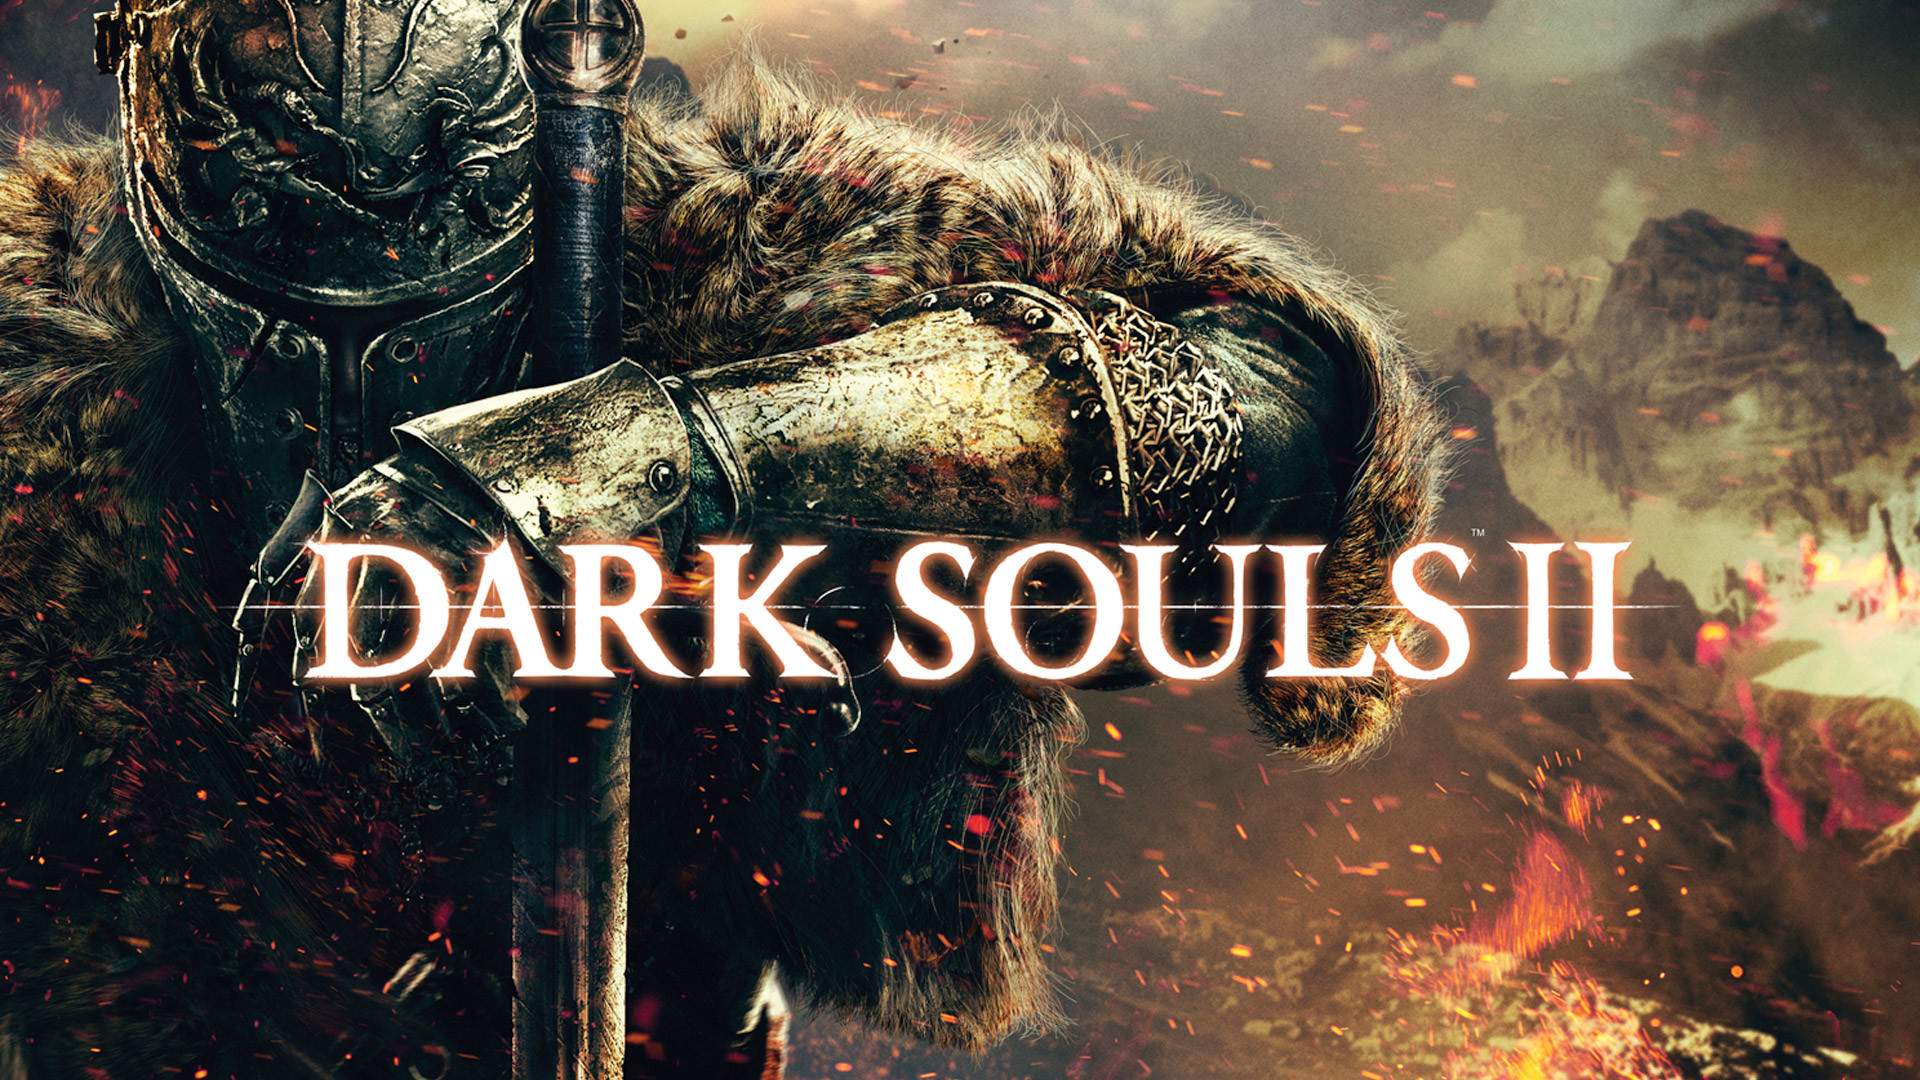 75 Dark Souls 2 Wallpaper 1920 1080